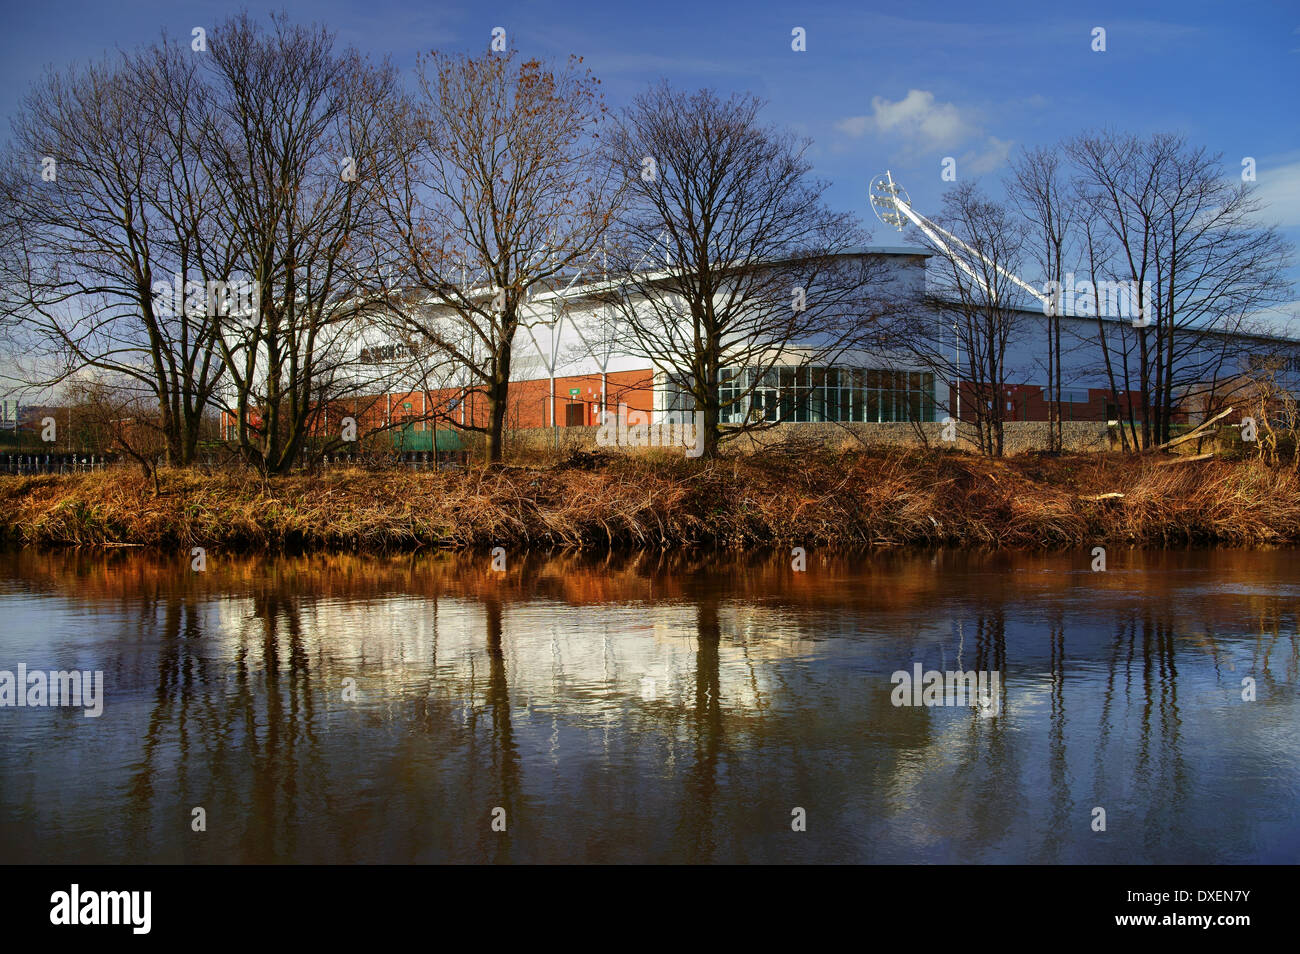 UK,South Yorkshire,Rotherham,New York Stadium & reflections in River Don - Stock Image